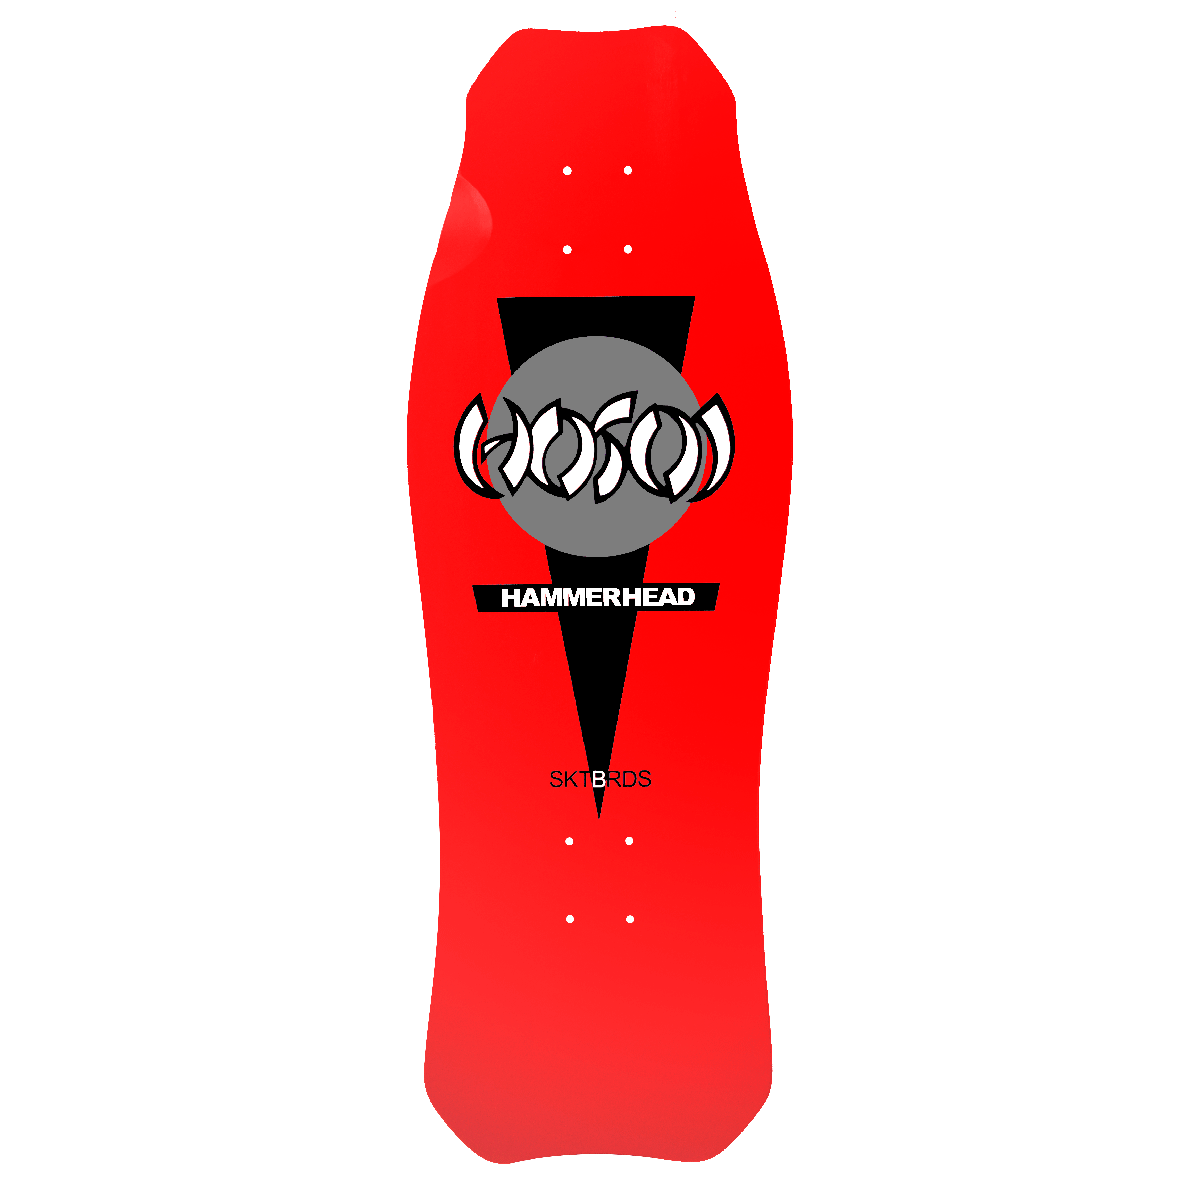 Hosoi_Hammerhead_Red_Bottom.png